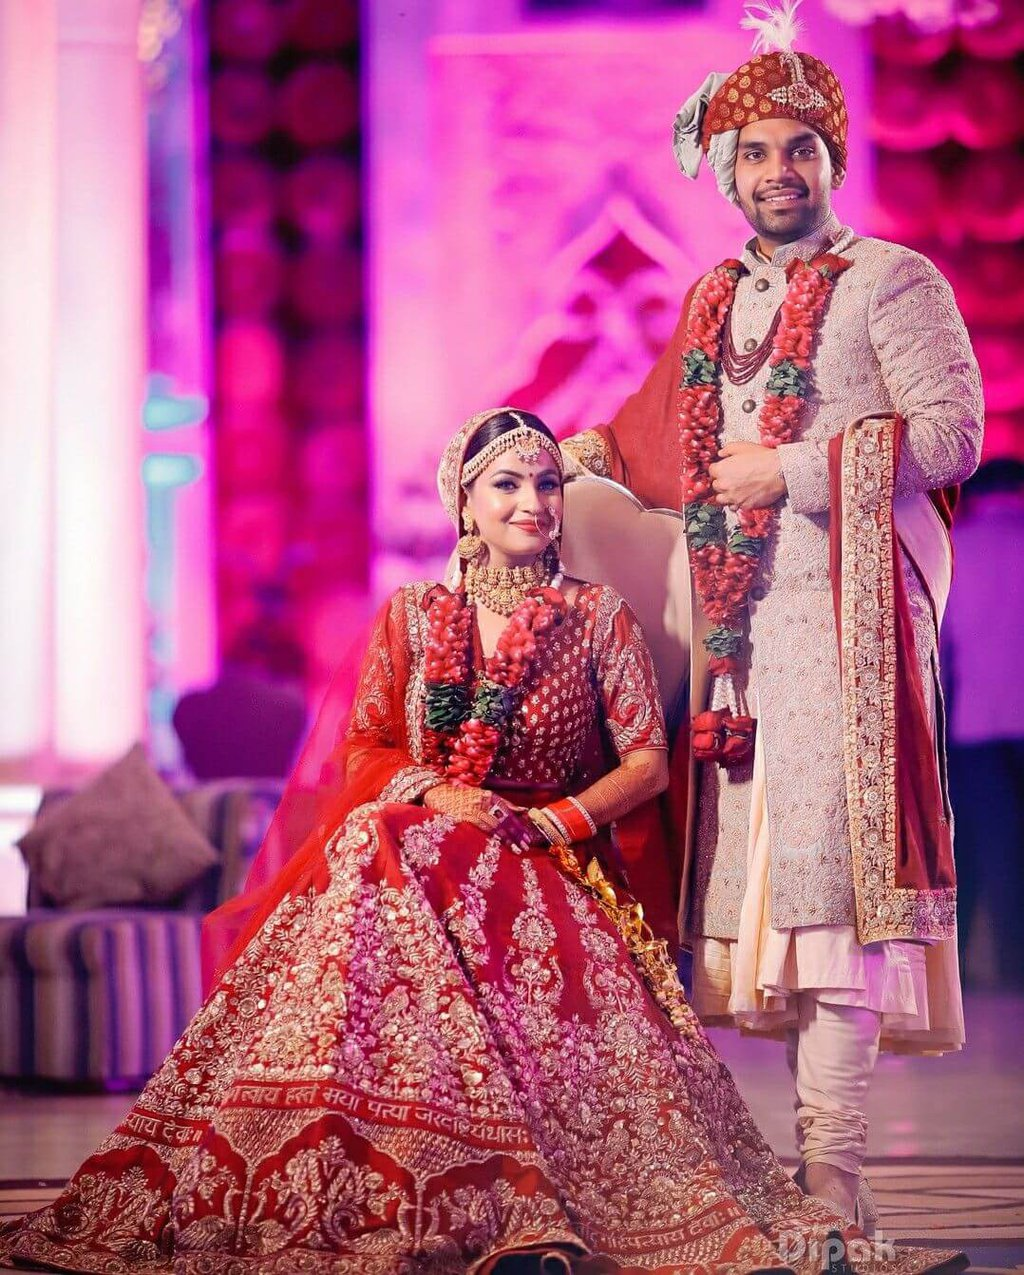 bride-groom outfit combination for wedding